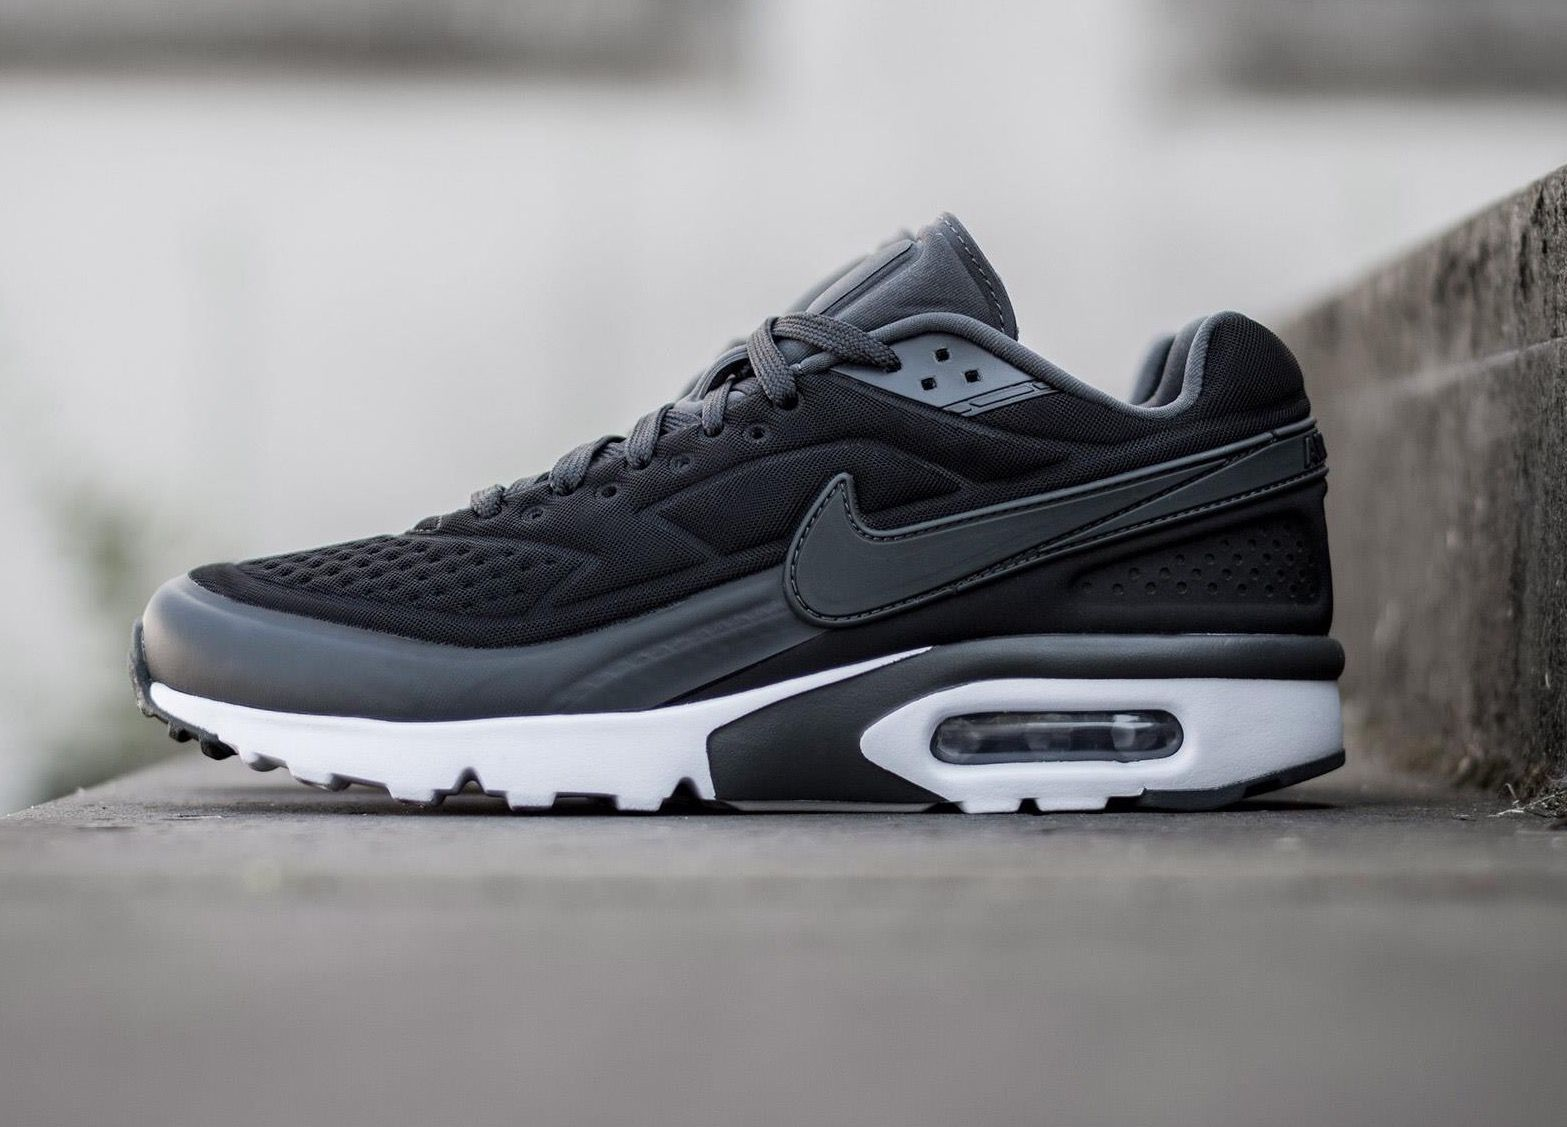 efcbd126 Nike Air Classic BW Ultra: Black/Grey | shoes in 2019 | Sneakers ...